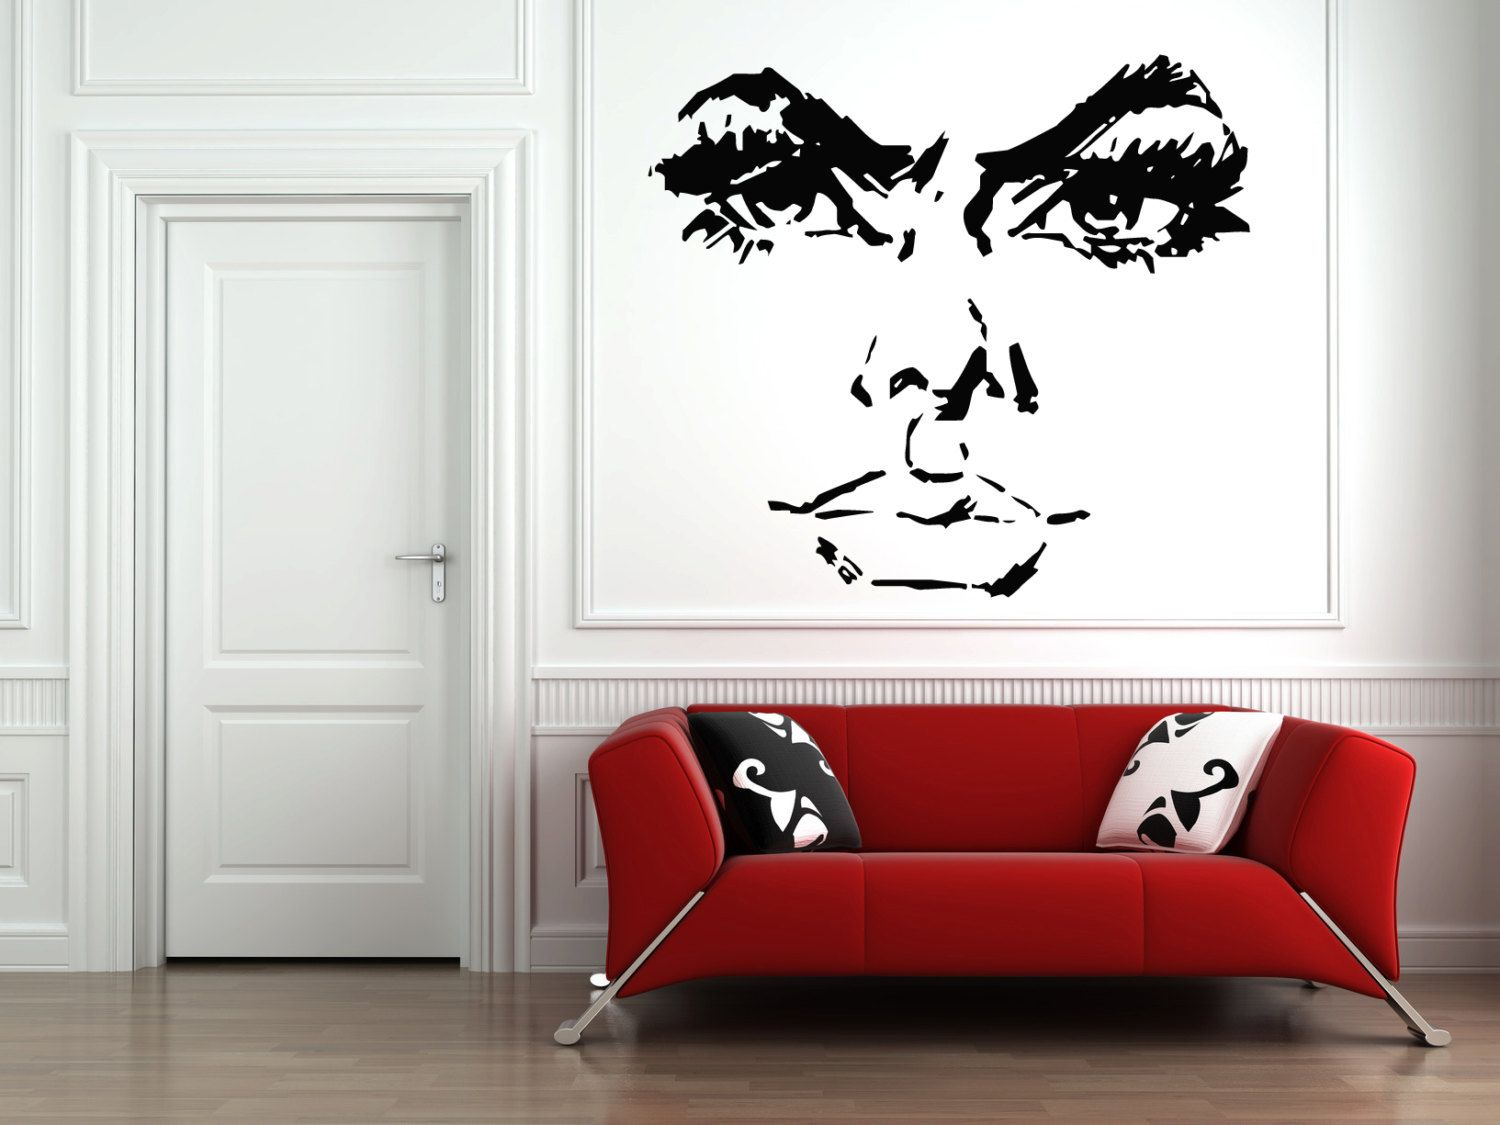 Wall Vinyl Sticker Decals Mural Room Design Pattern Woman Face Girl Model Eyes  bo559 by RoomDecalsAndDesigns on Etsy